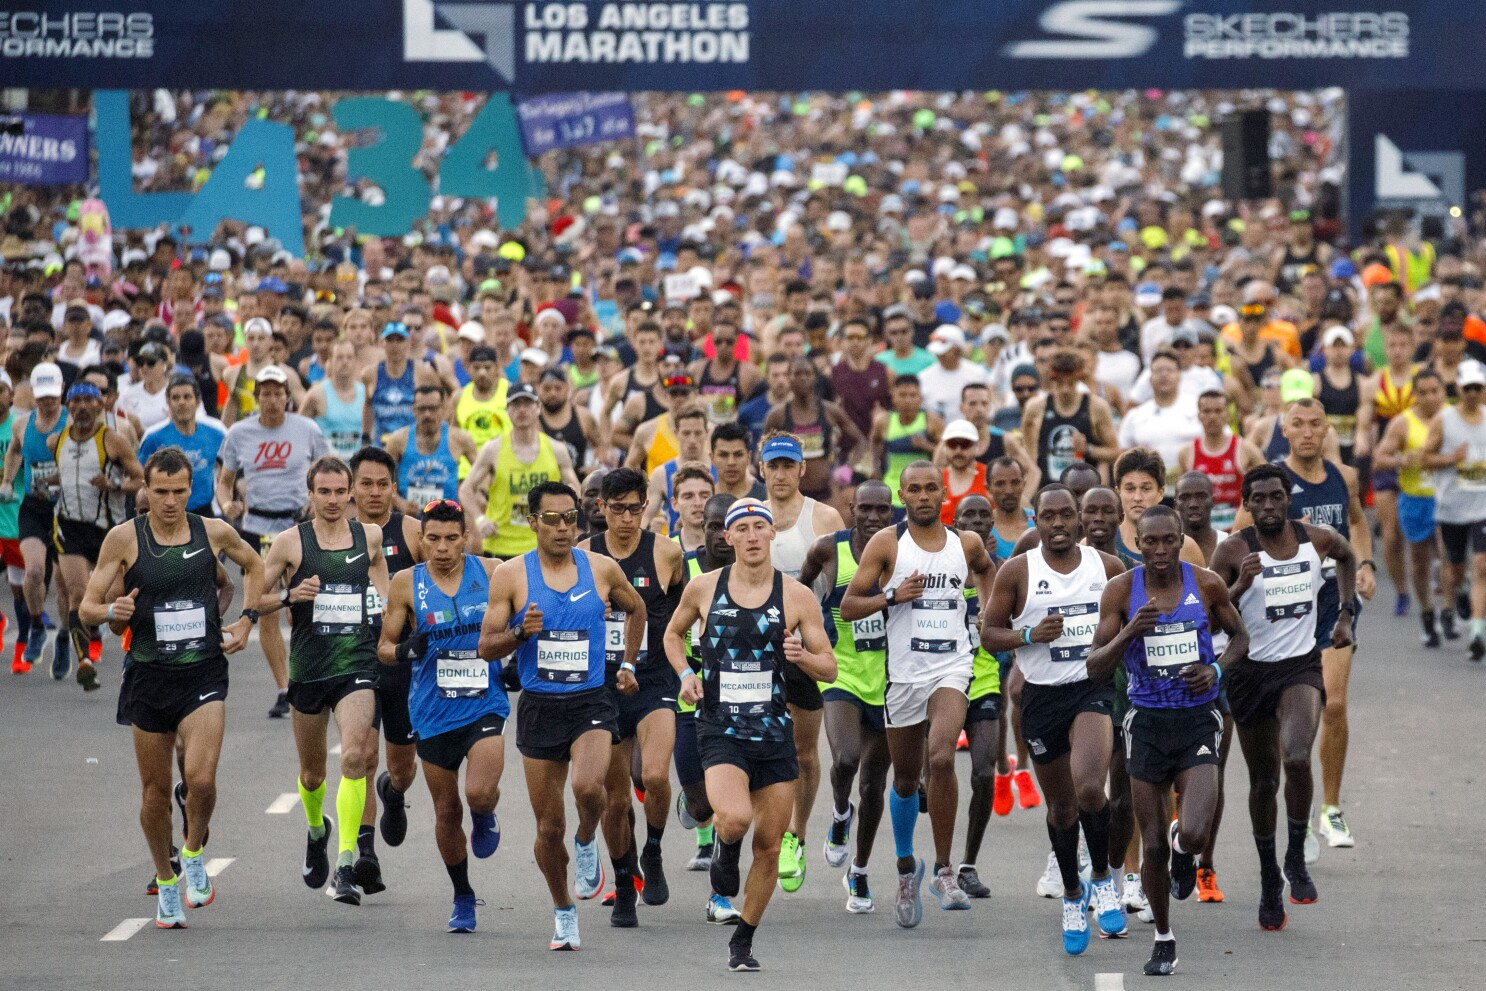 Why your marathon training starts now - Los Angeles Times